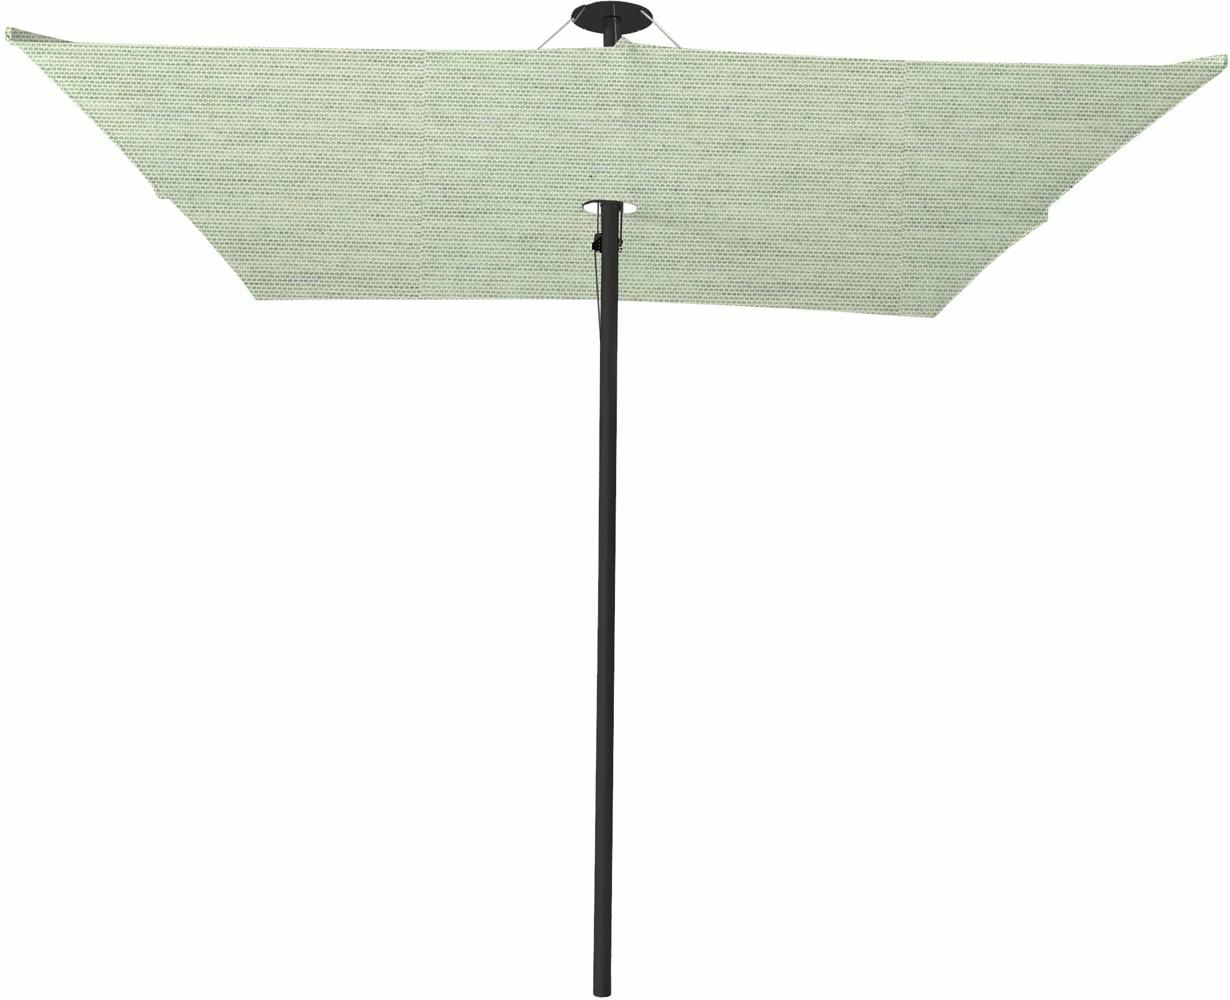 Infina center post umbrella, 3 m square, with frame in Dusk and Solidum Mint canopy.